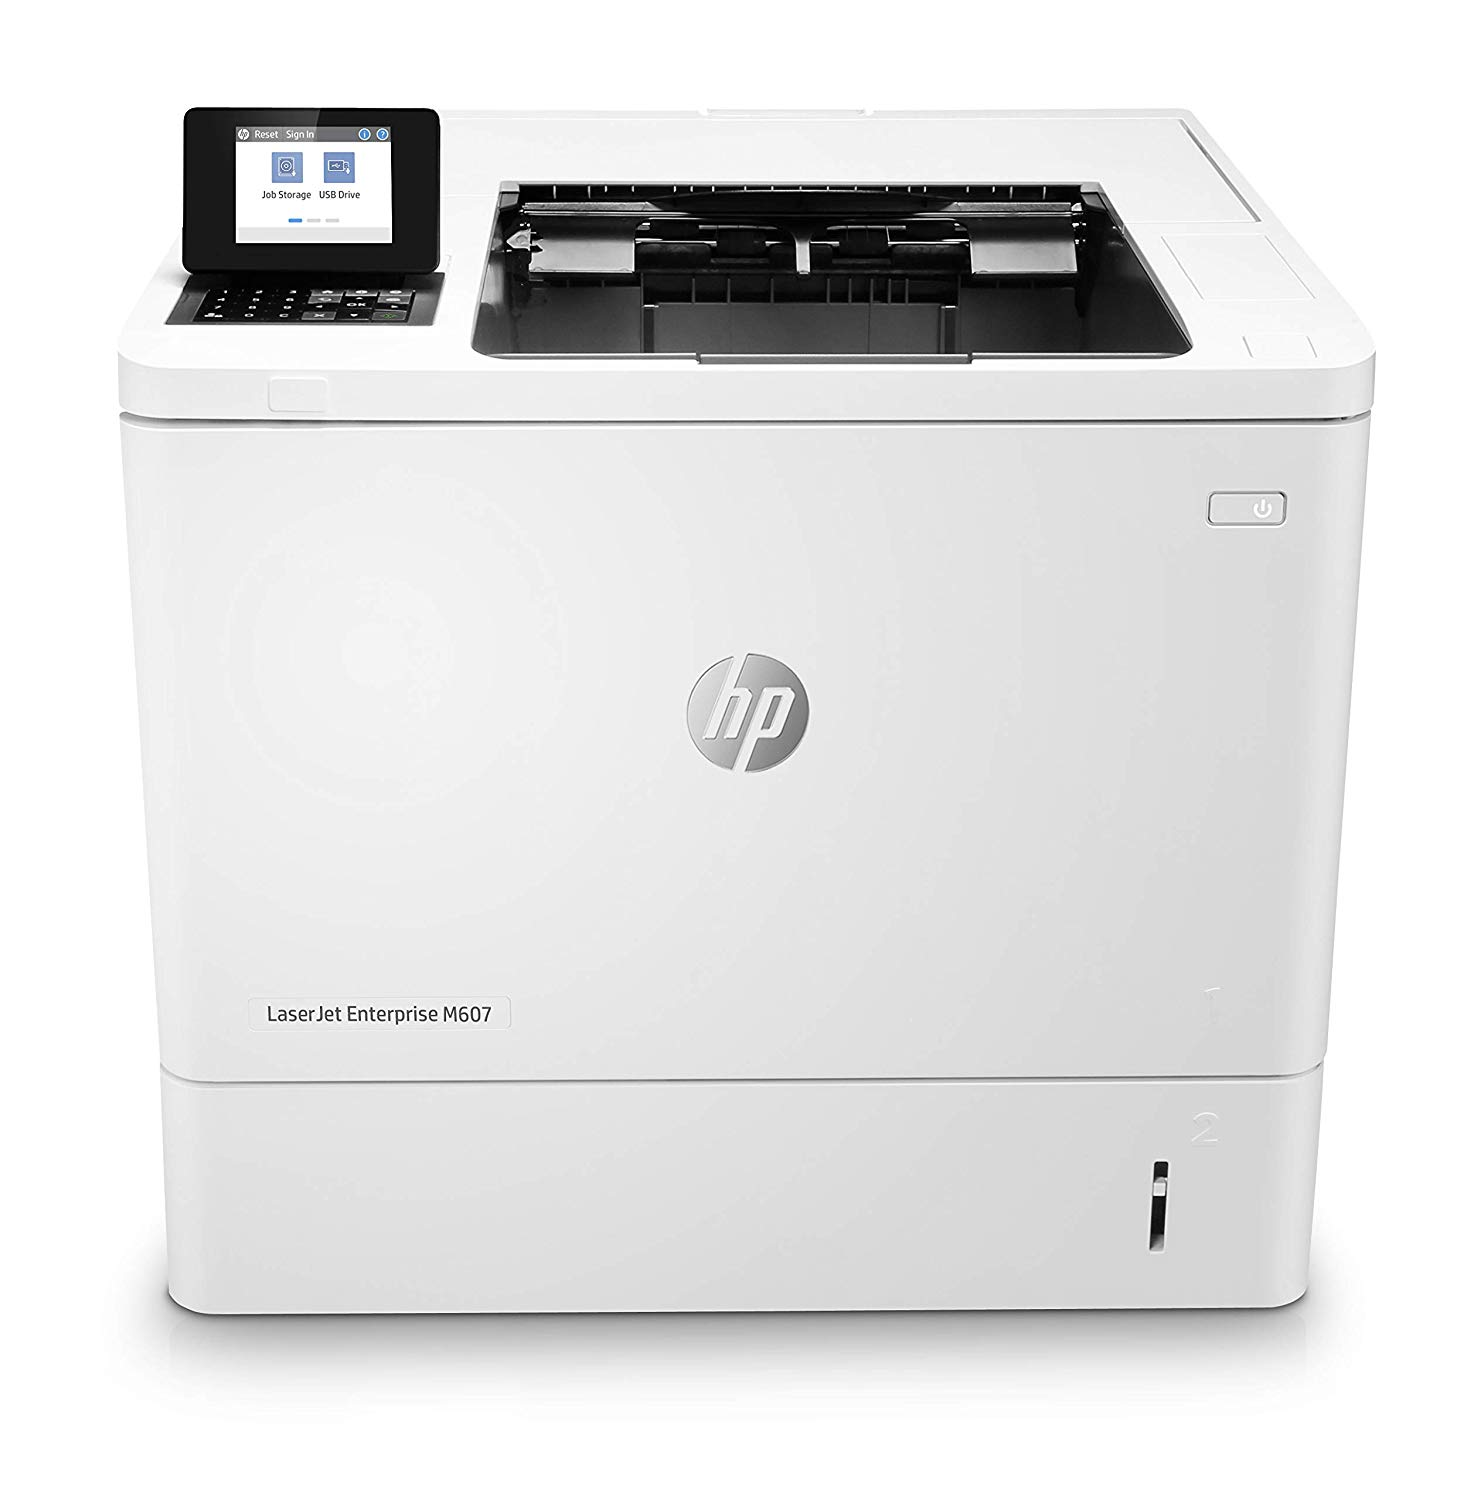 LaserJet Enterprise M607